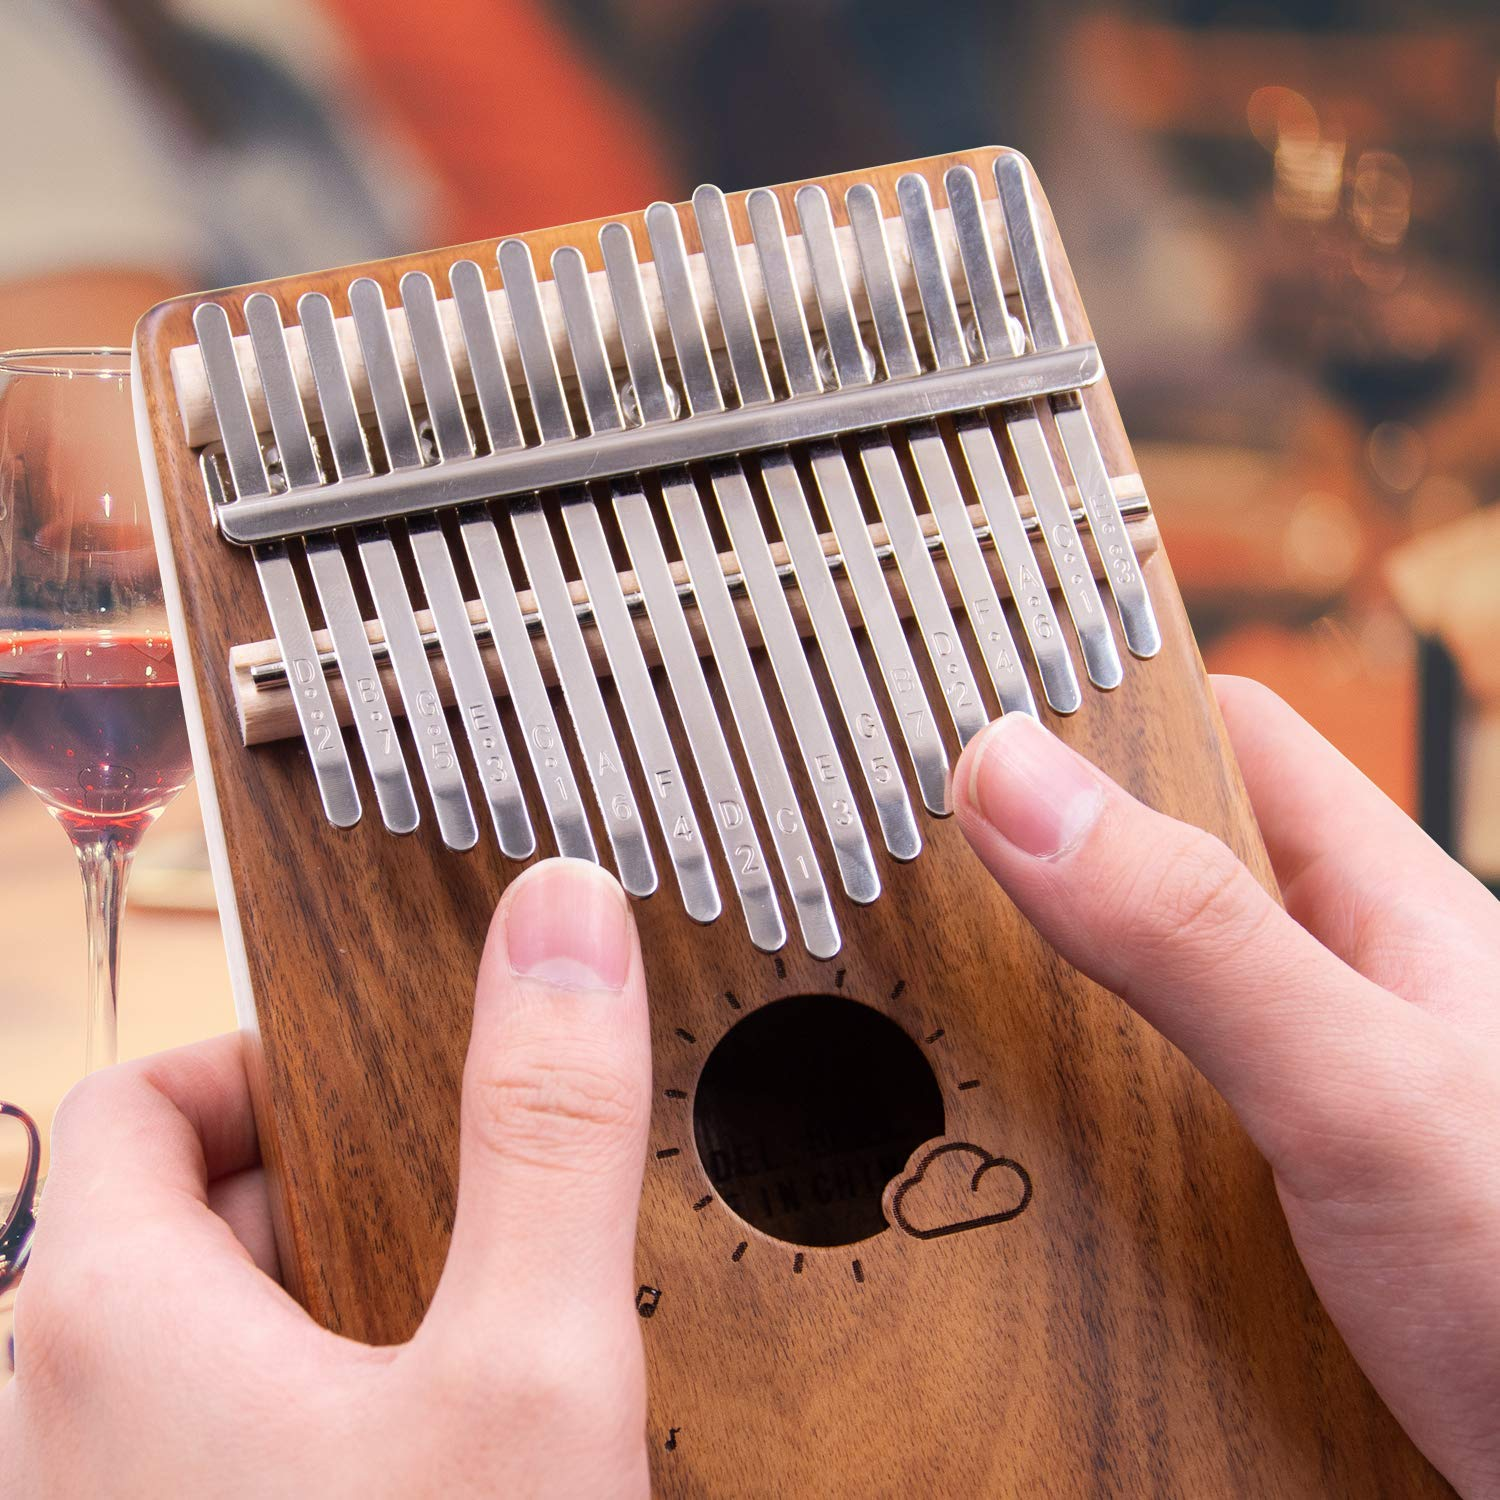 Kalimba 17 Keys Thumb Piano Solid Wood Finger Piano Musical Instrument with Study Instruction,Tuning Hammer,Gift for Kids Adult Beginners Professional without any musical basis(Dark Brown) by Tripolar (Image #3)